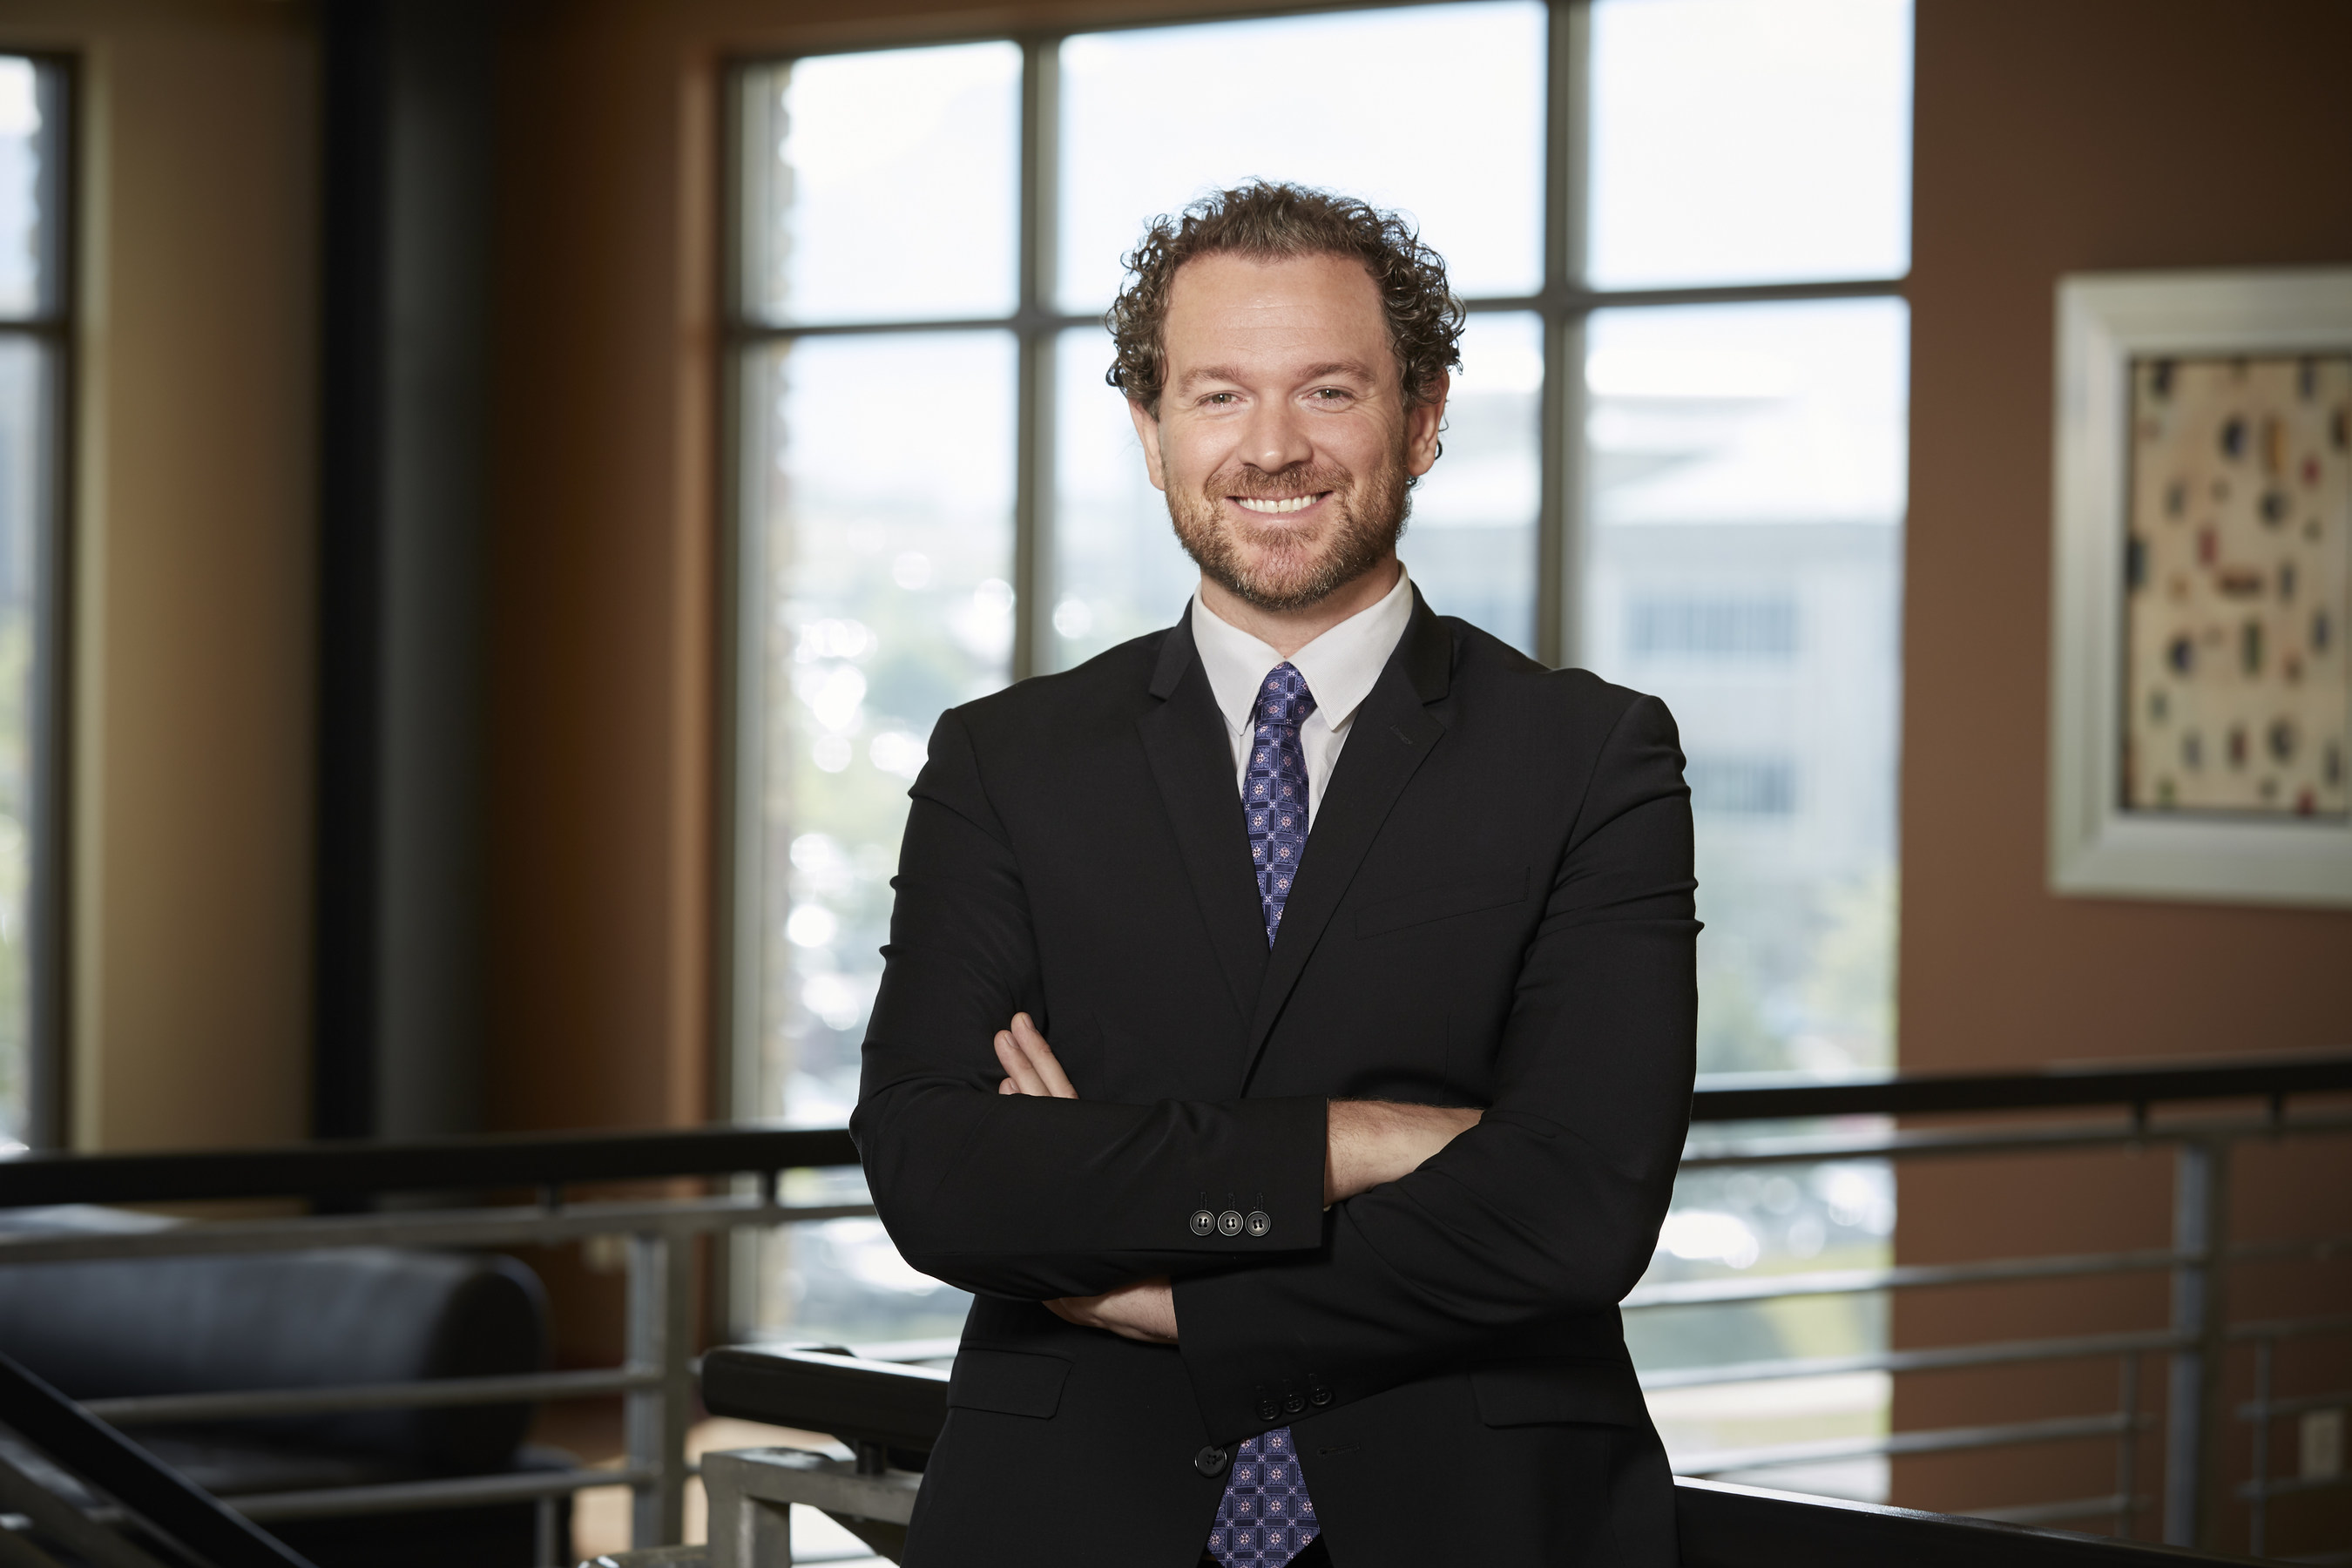 Jared S. Turner is appointed Chief Operating Officer of Young Living Essential Oils